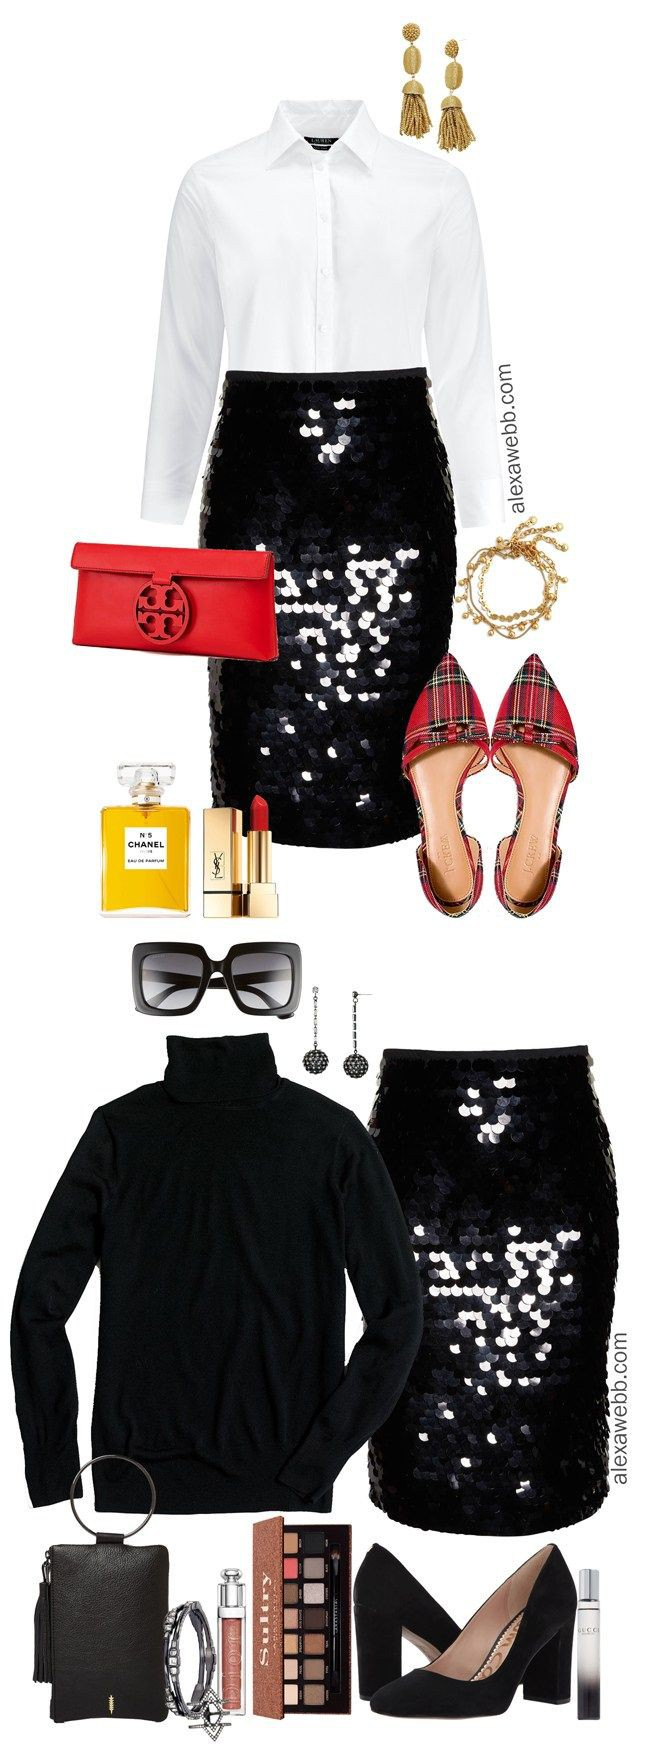 Black sequin skirt outfit plus size clothing, danny & nicole